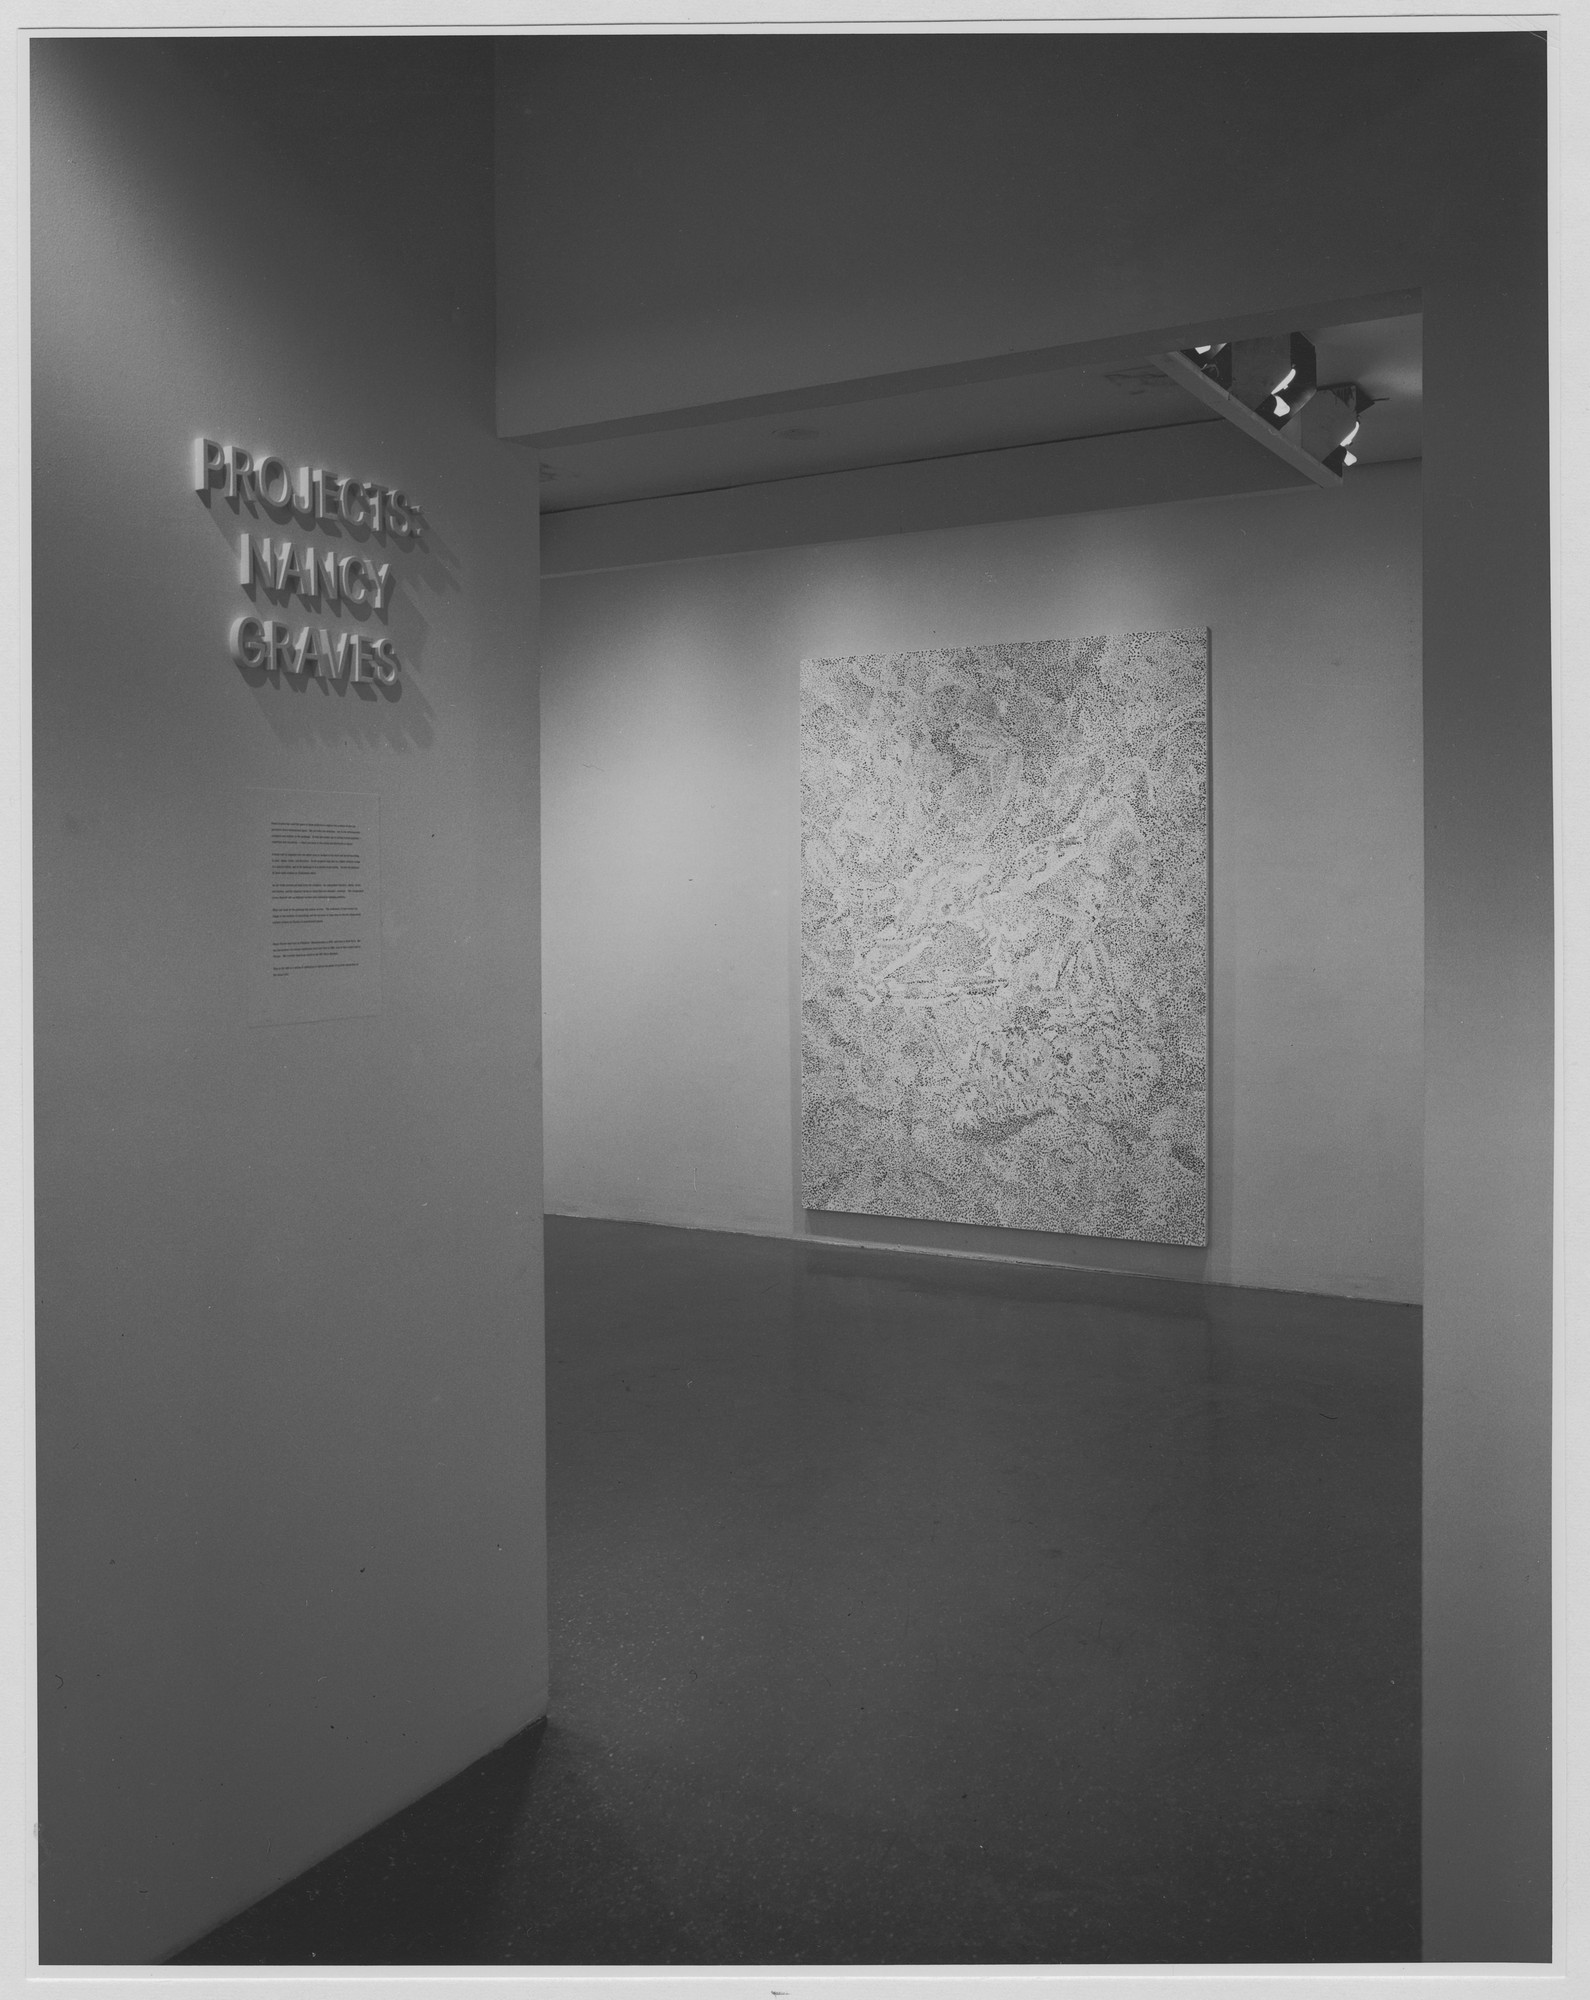 "Installation view of the exhibition, ""Projects: Nancy Graves."" December 15, 1971–January 24, 1972 (Paintings, Northwest Galleries); December 15, 1971–February 7, 1972 (Sculpture, Far West Gallery). Photographic Archive. The Museum of Modern Art Archives, New York. IN986.1. Photograph by James Mathews."